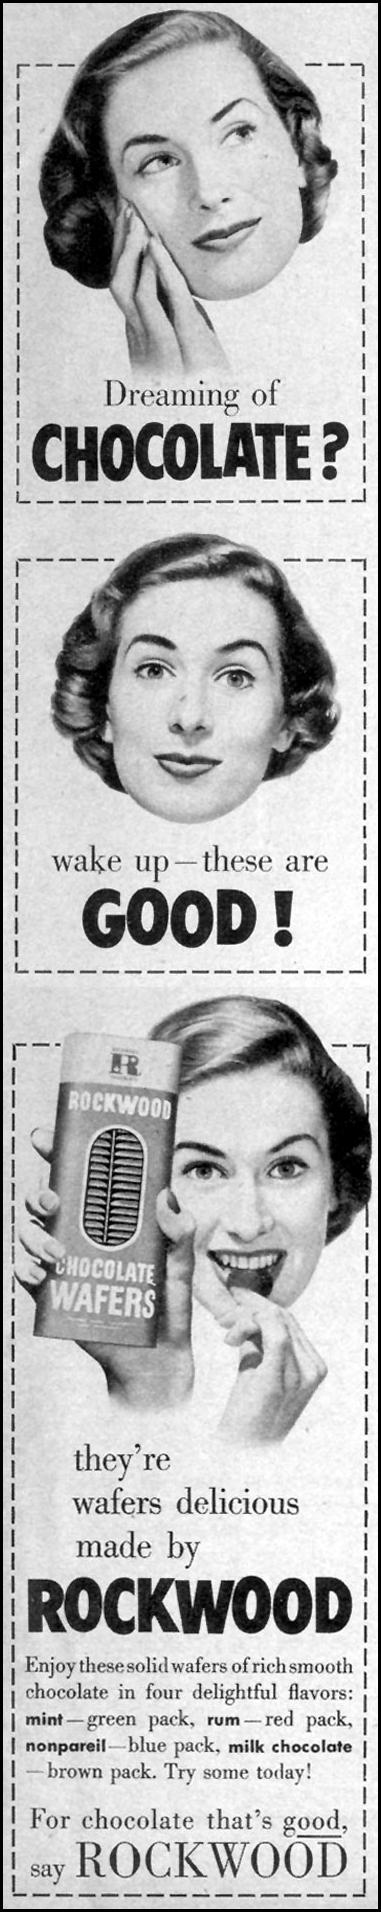 ROCKWOOD CHOCOLATE WAFERS LOOK 12/04/1951 p. 9